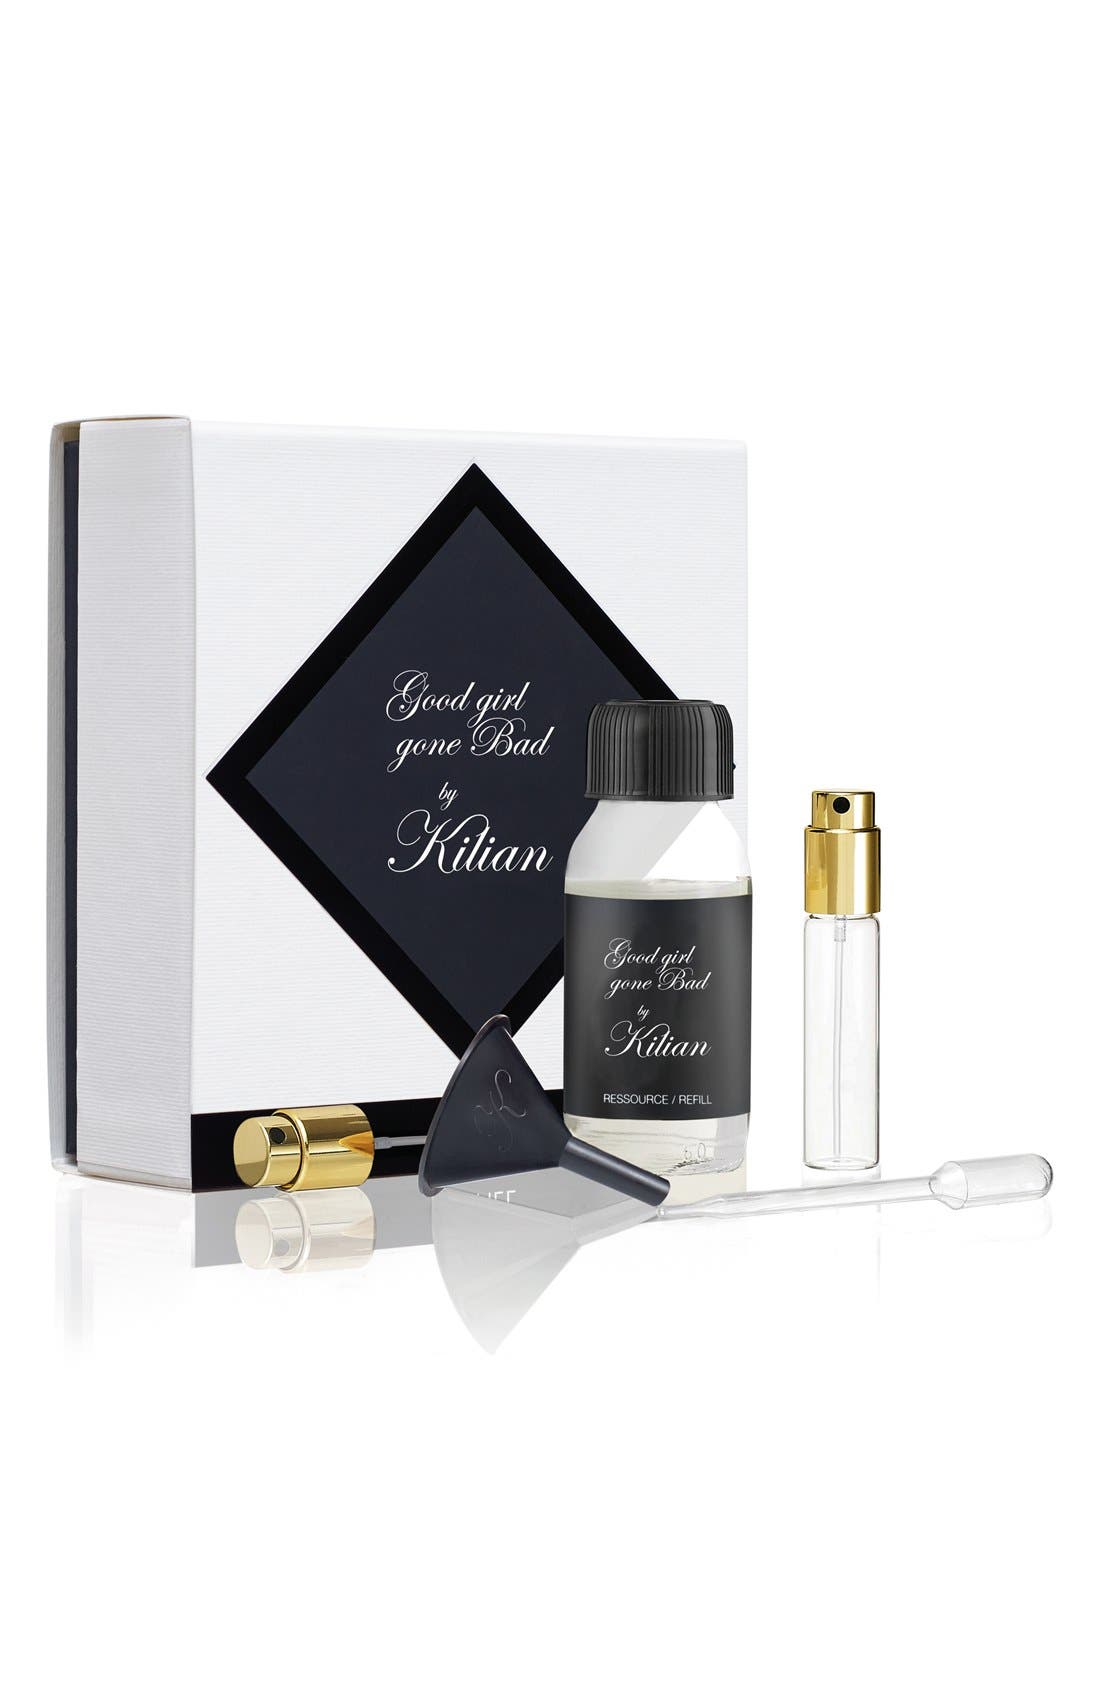 Kilian 'In the Garden of Good and Evil - Good Girl Gone Bad' Refill Set